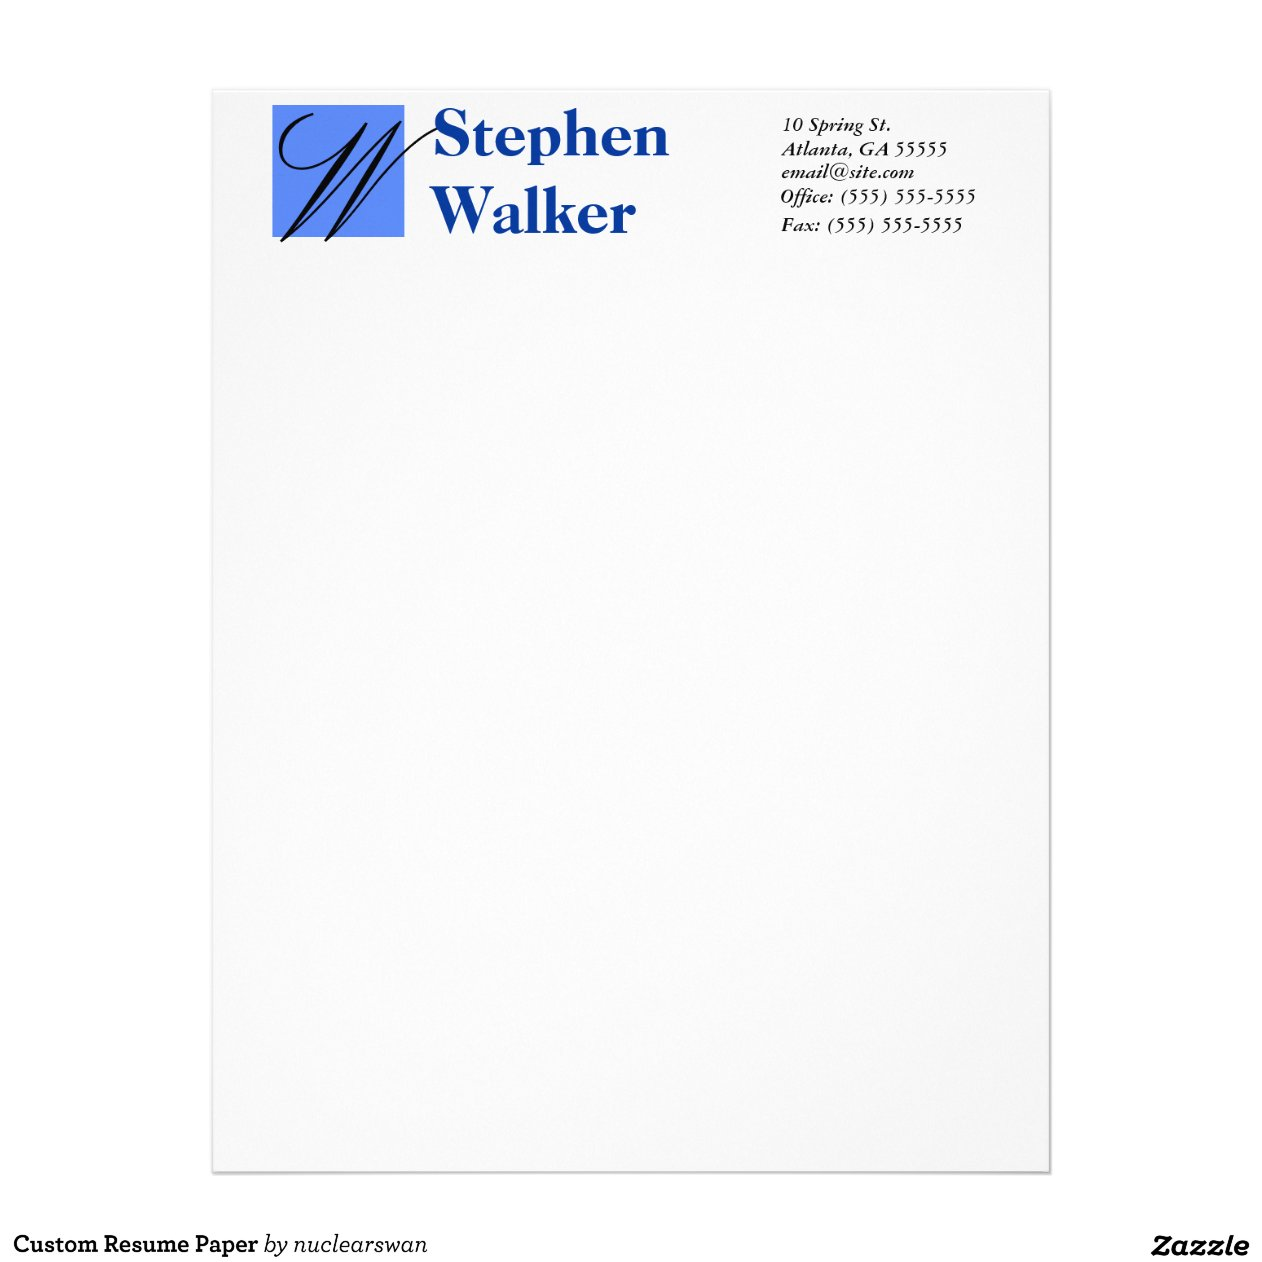 Where can i buy resume paper